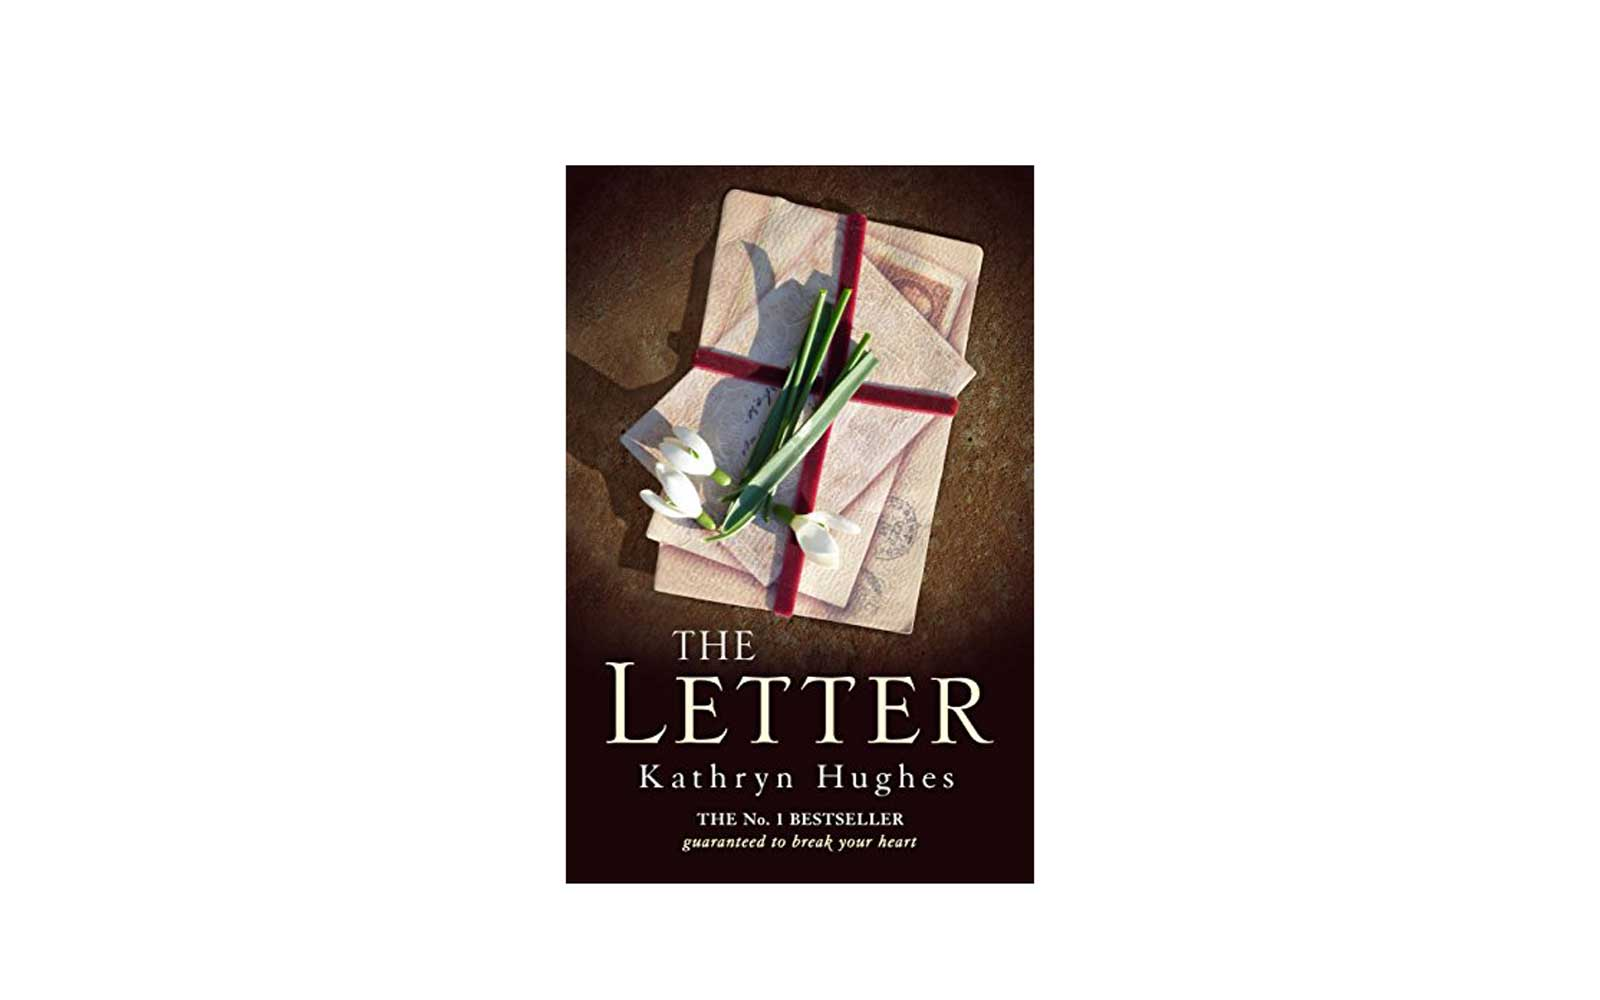 20 most popular Kindle books 2017 The Letter